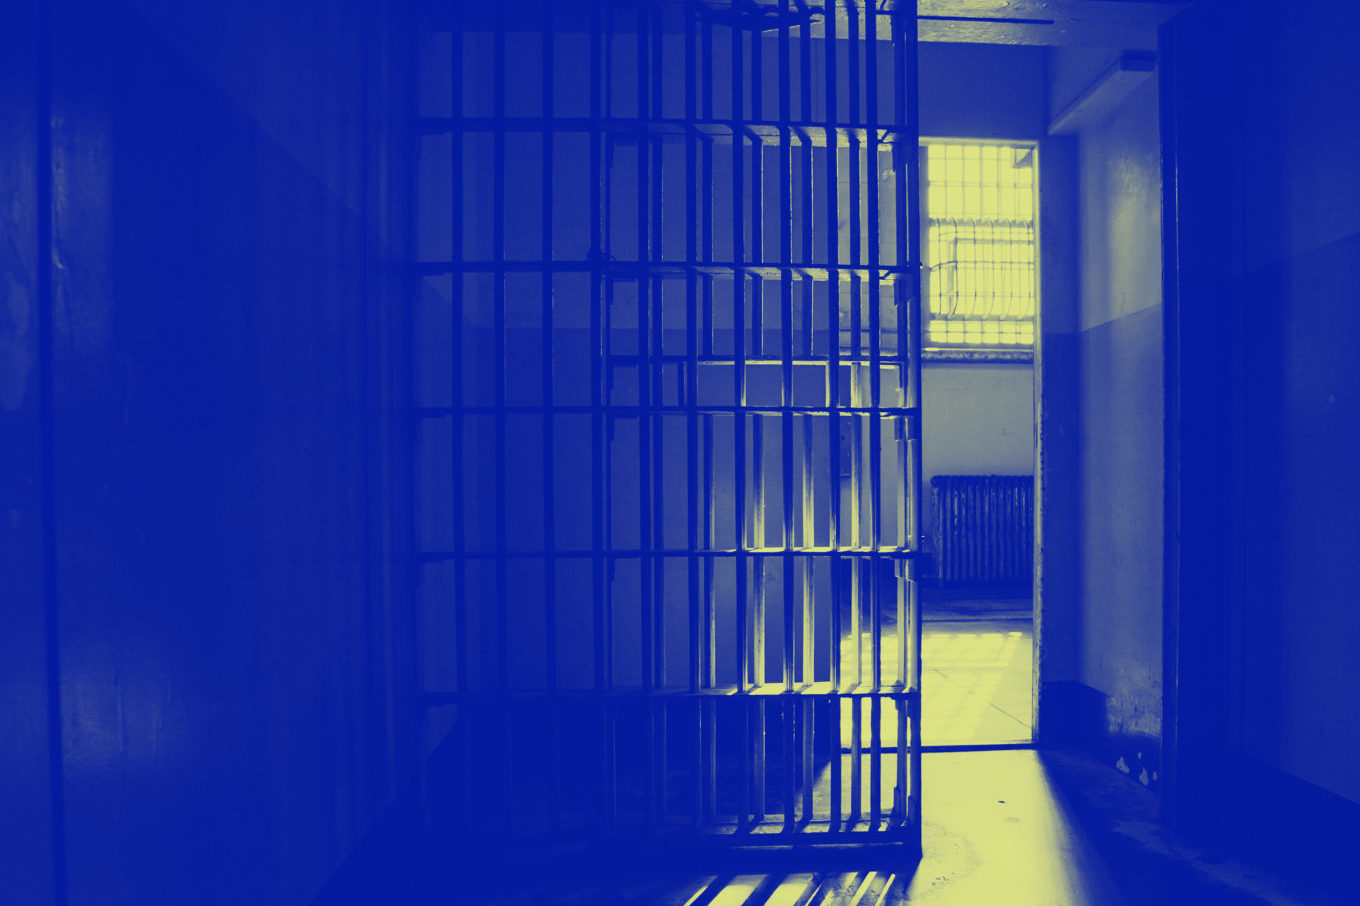 Being Church to Those Impacted by Mass Incarceration